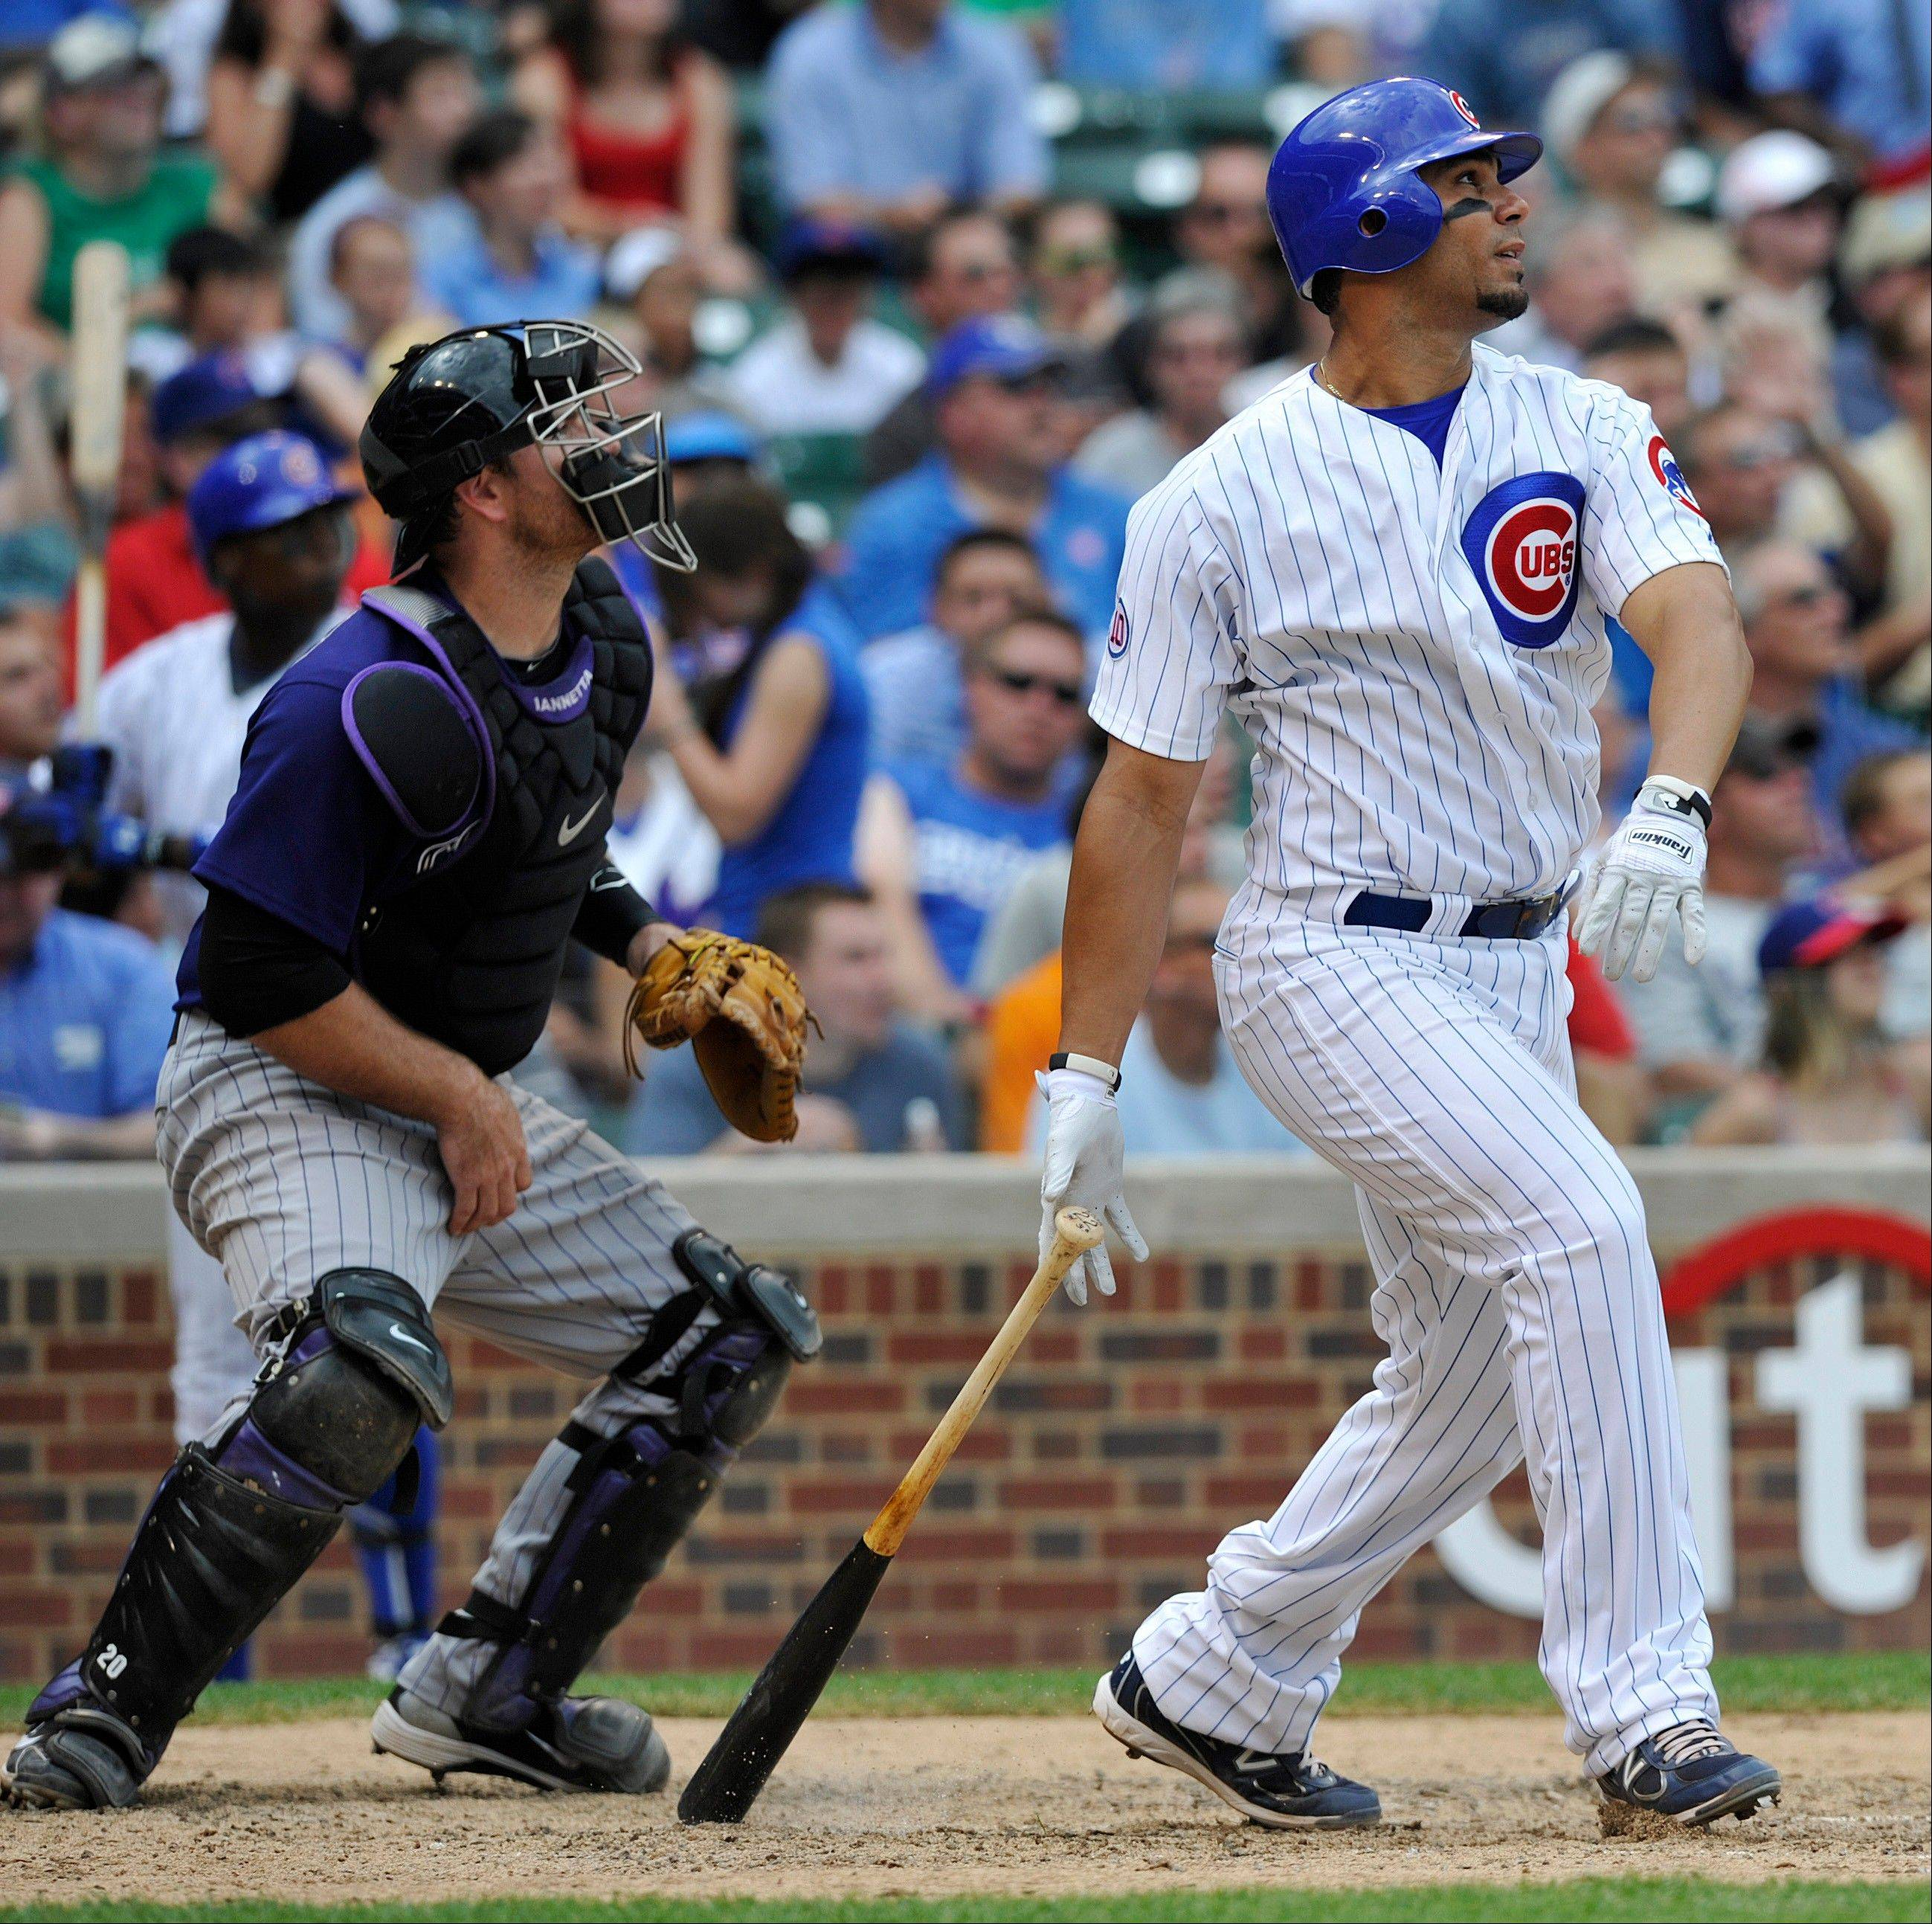 Colorado Rockies catcher Chris Iannetta looks on Monday as the Cubs� Carlos Pena watches his two-run homer during the fifth inning at Wrigley.